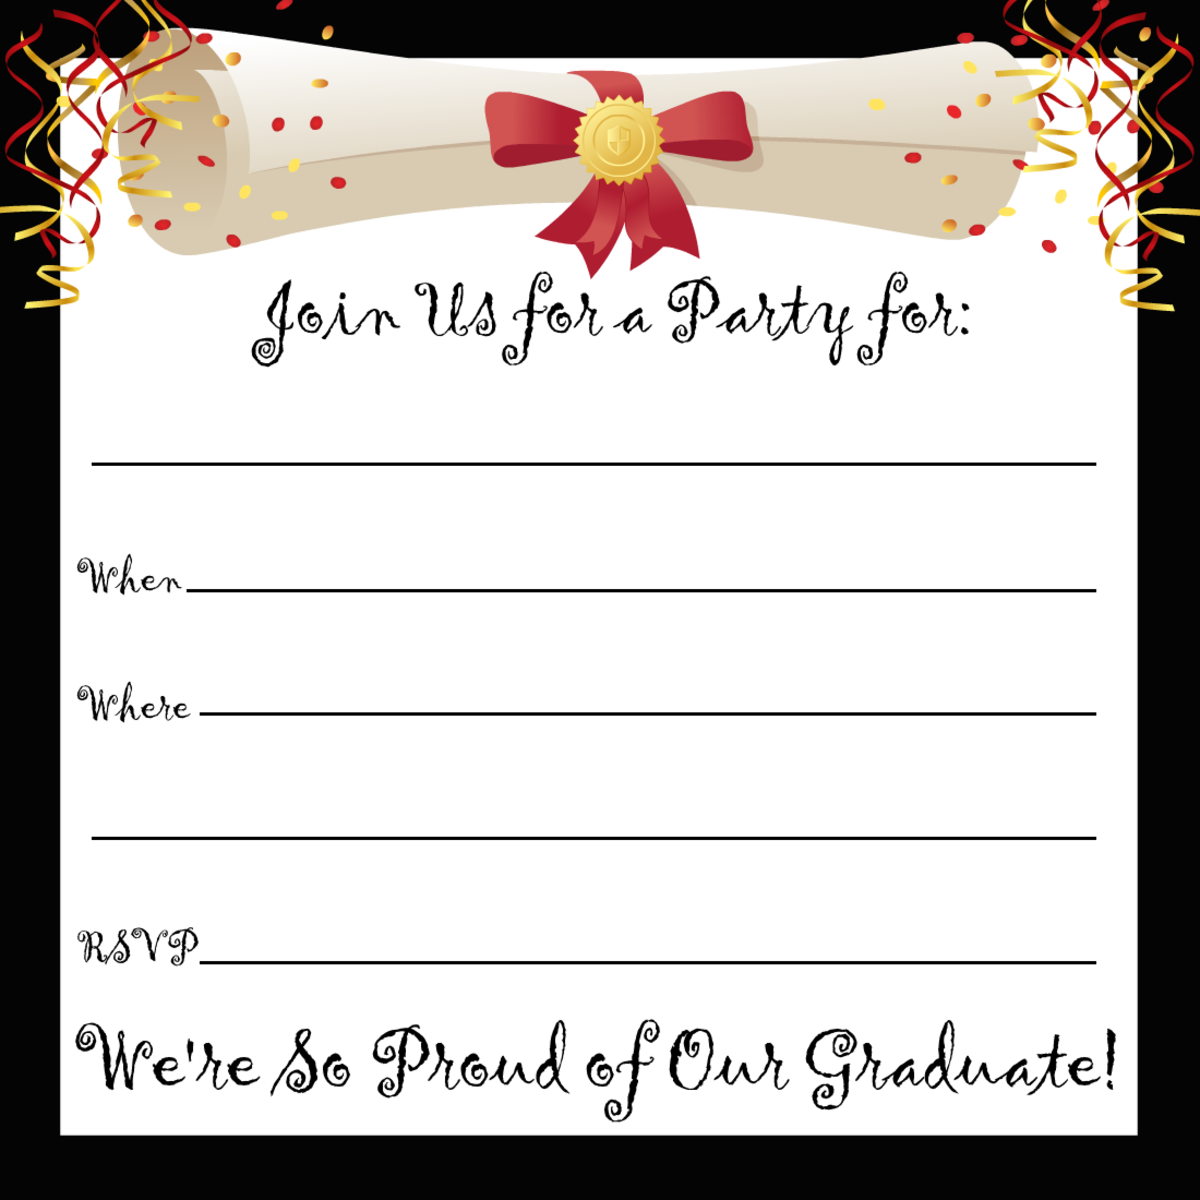 Free printable graduation party invitation with black border and diploma